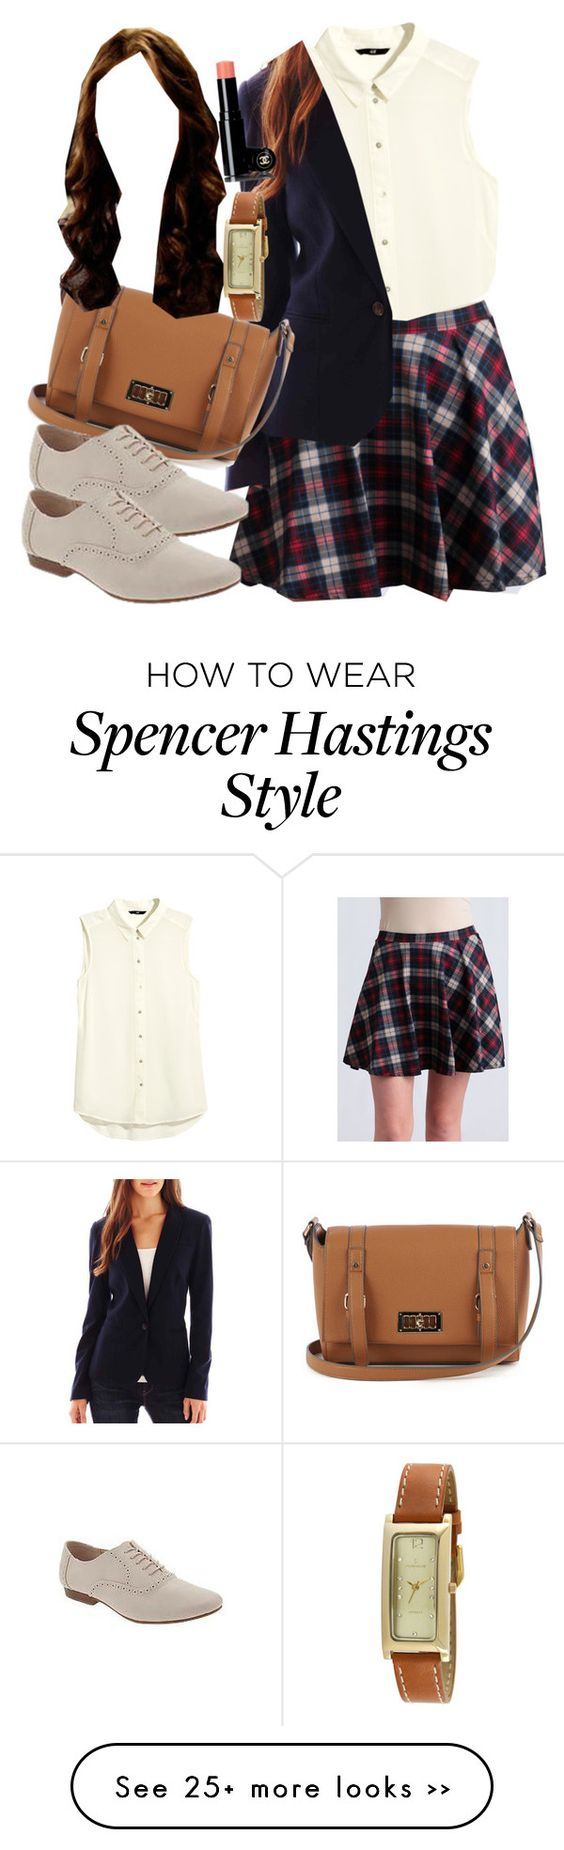 """""""Spencer Hastings inspired outfit with requested skirt"""" by liarsstyle on Polyvore"""